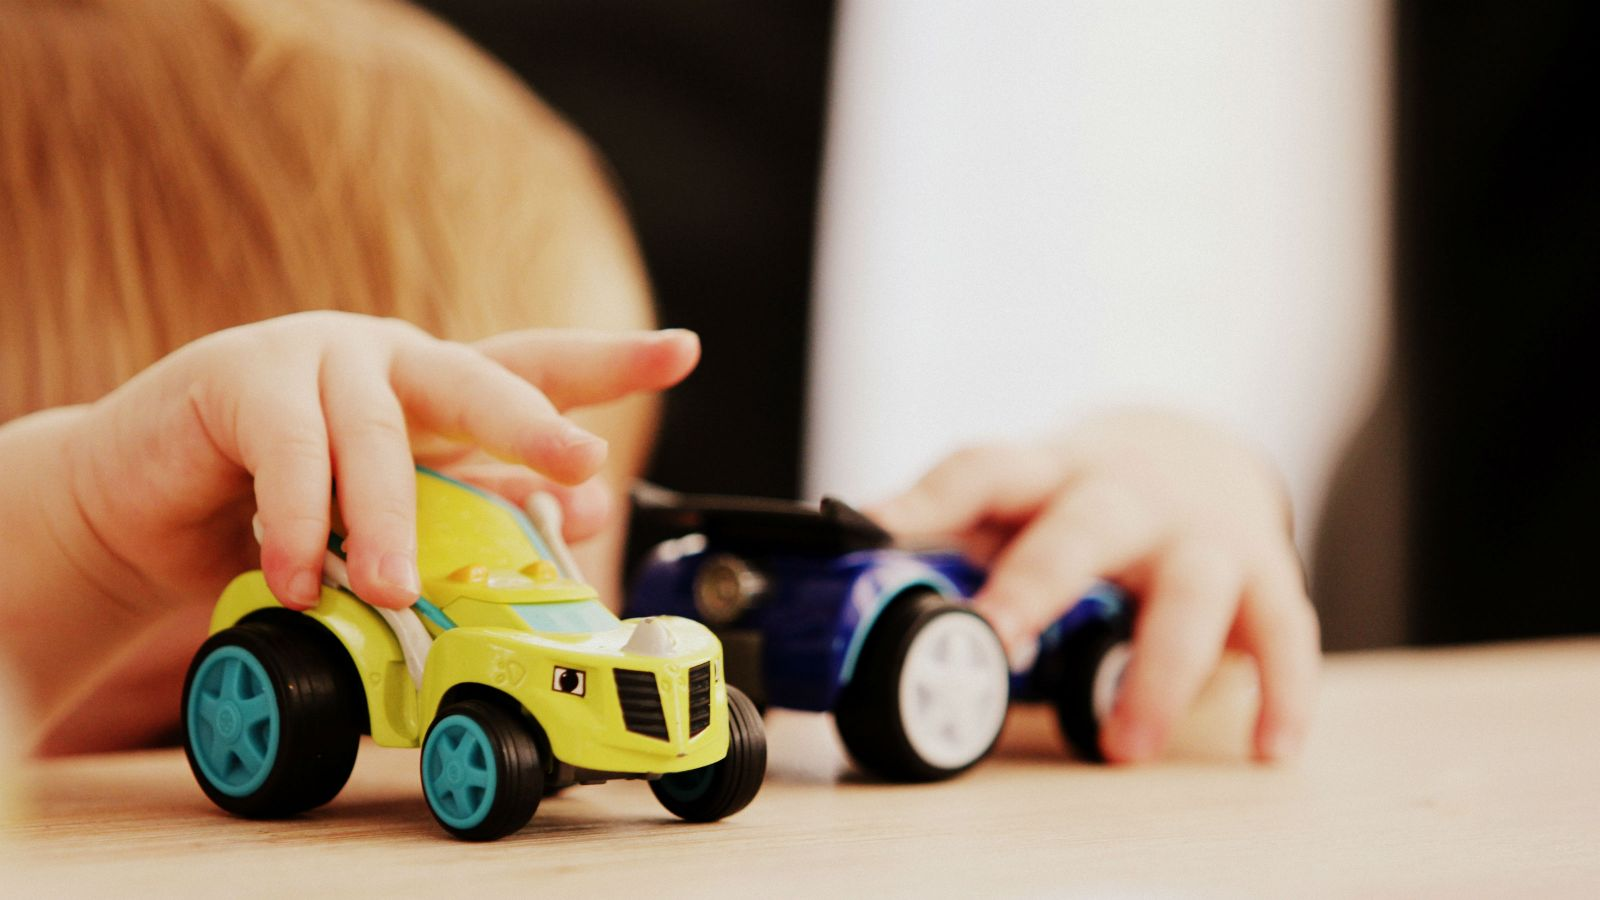 A child plays with toy cars.